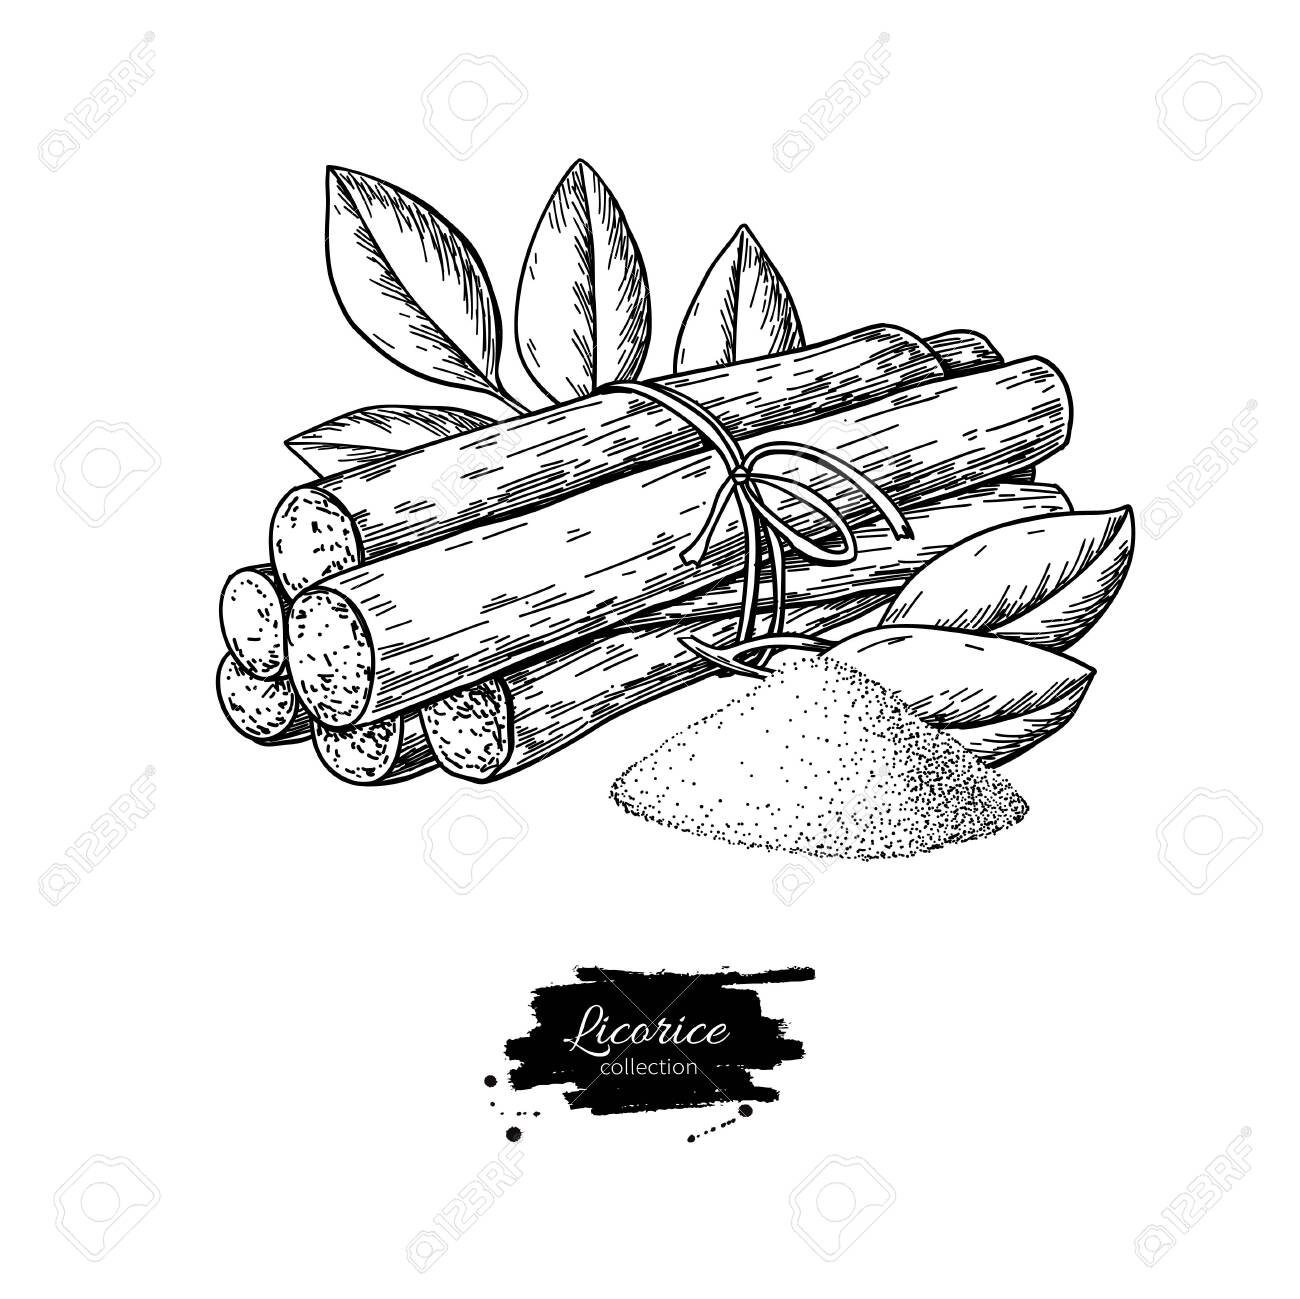 Licorice Root Bunch With Leaves Vector Drawing Botanical Illustration Royalty Free Cliparts Vectors And Stock Illustration Image 137120091